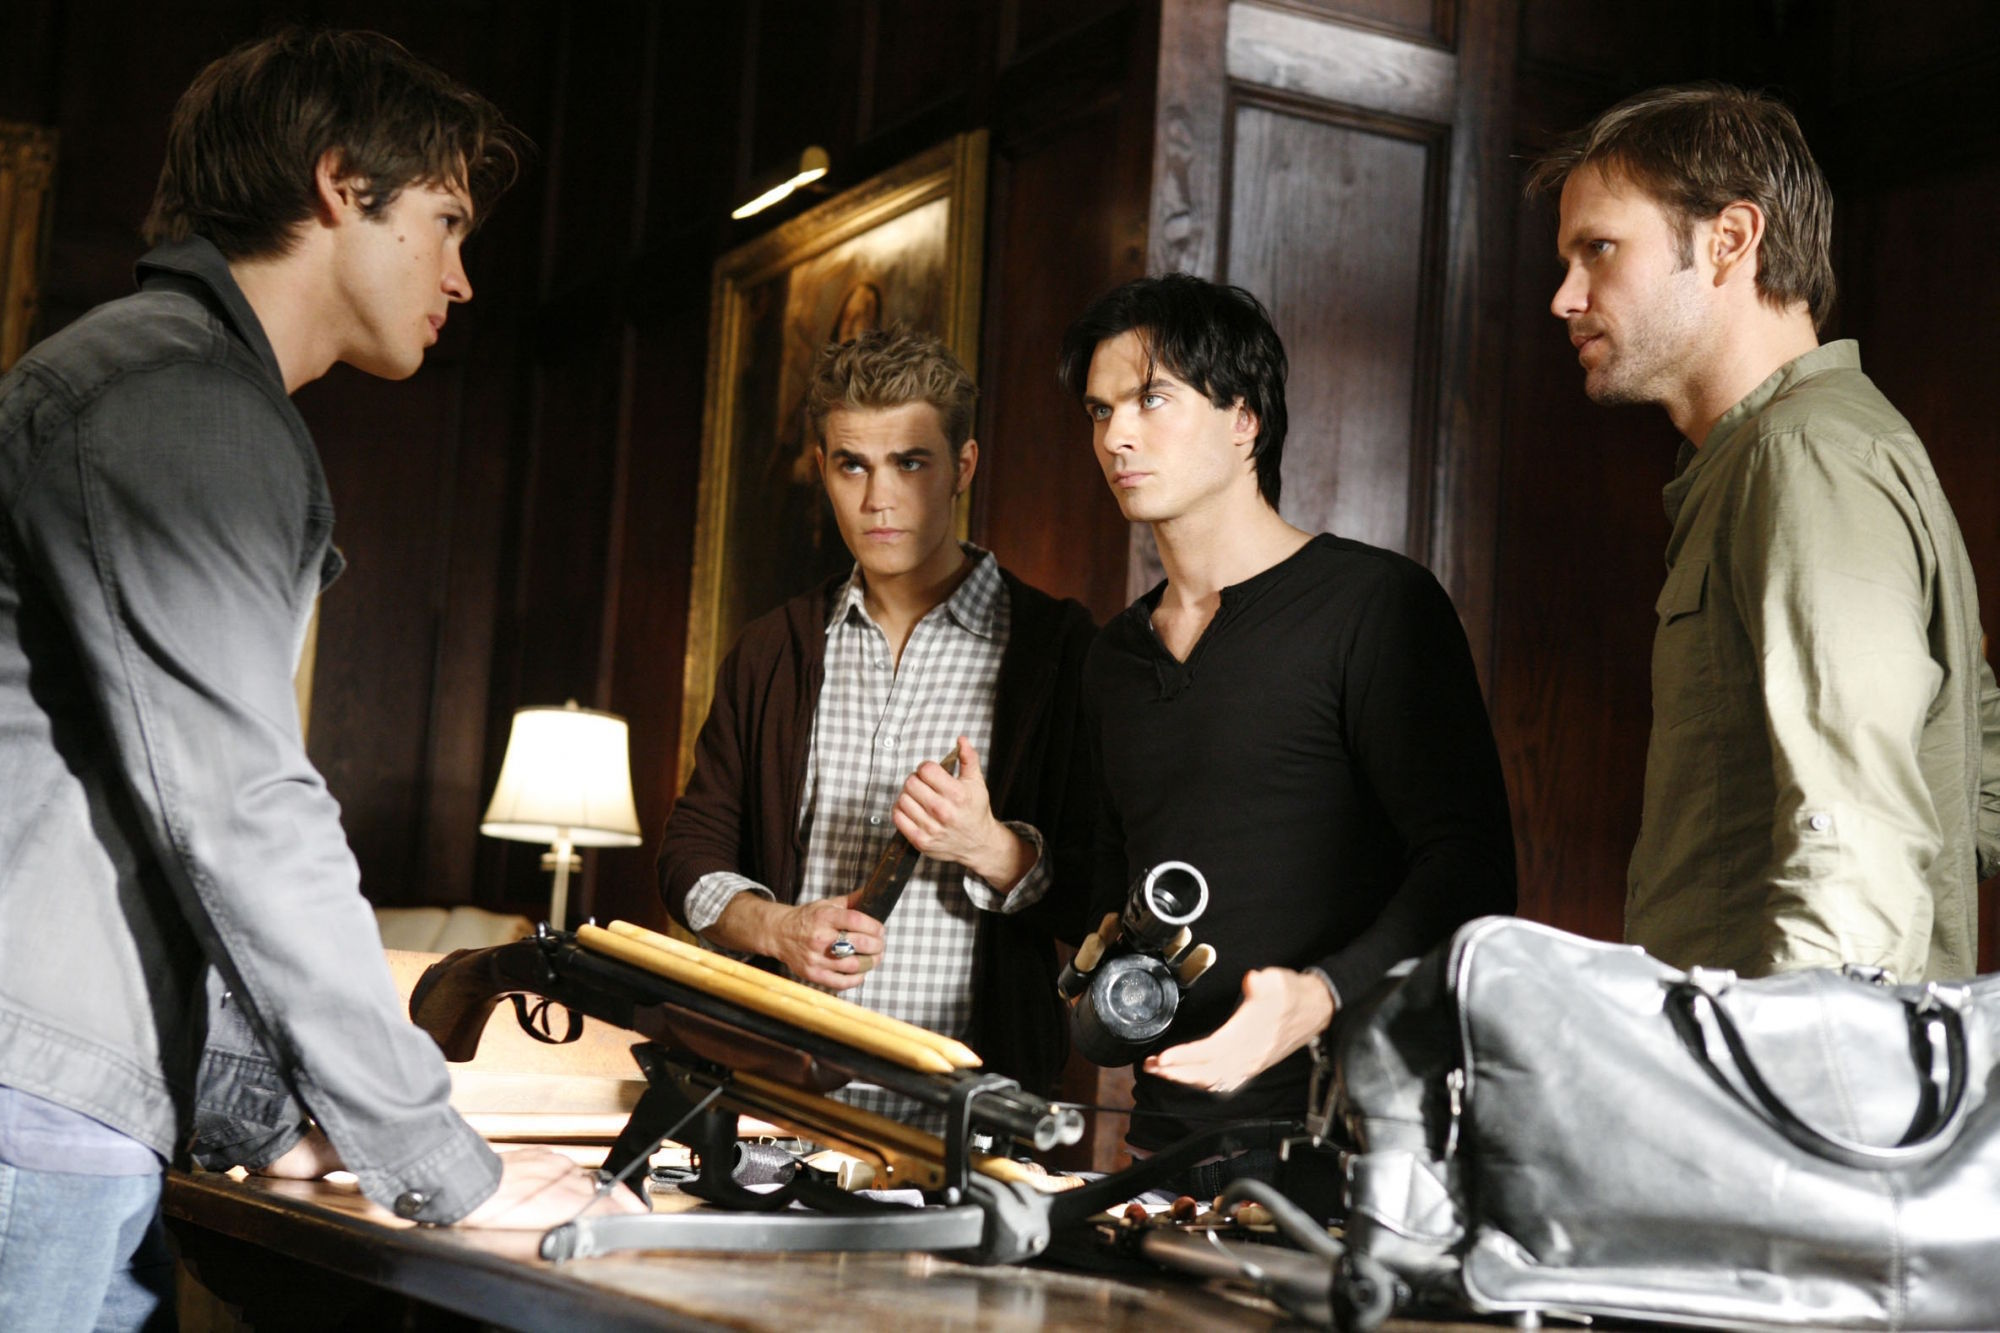 http://images4.fanpop.com/image/photos/16200000/2-07-Masquerade-the-vampire-diaries-16220659-2000-1333.jpg